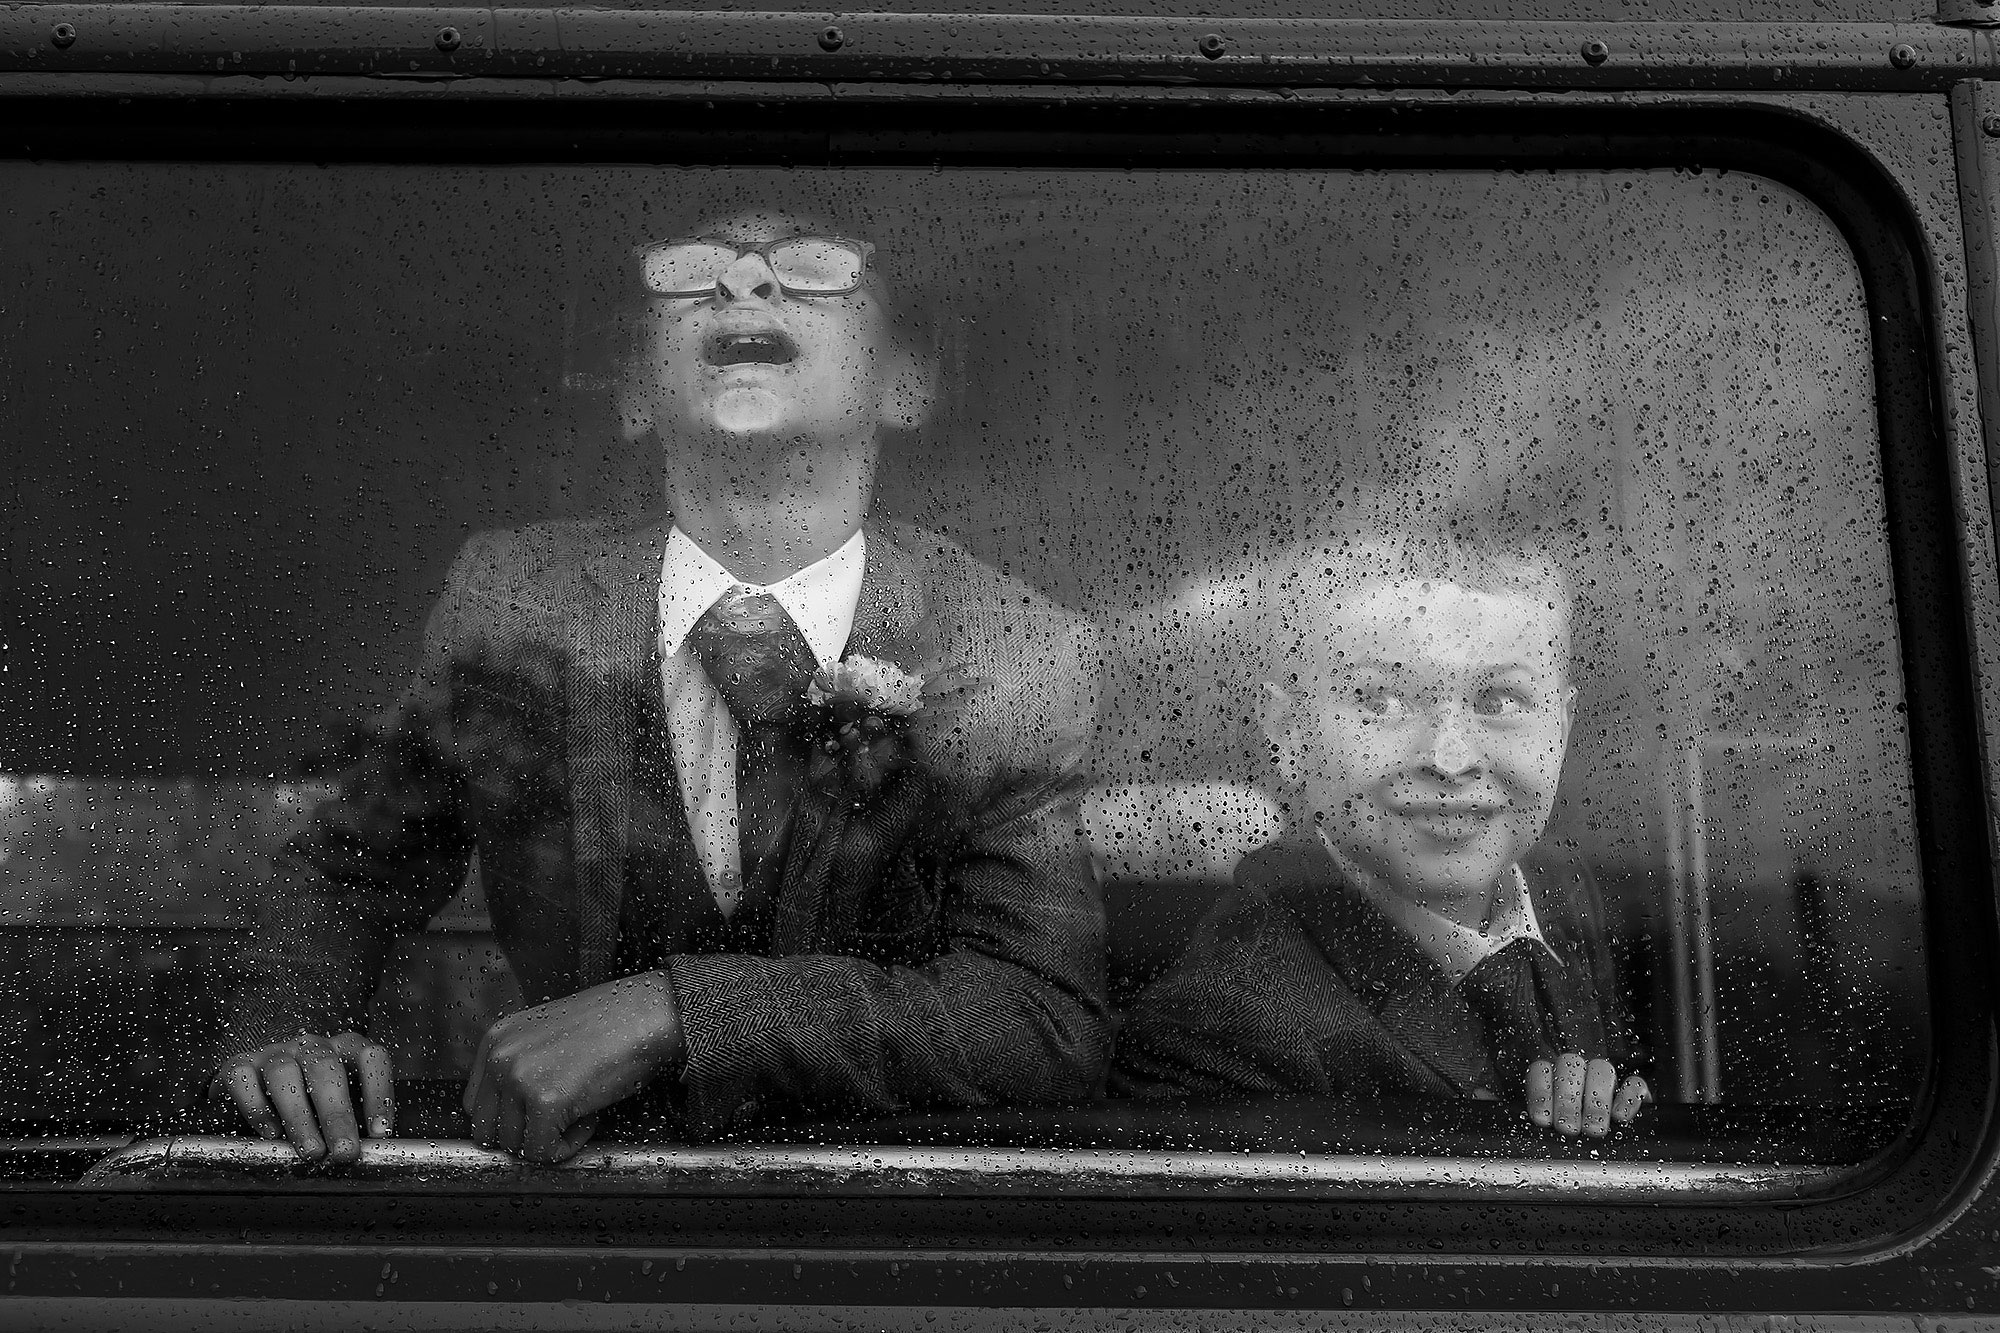 Page Boys pulling faces against the wedding bus window | Wellbeing Farm wedding photographs by Toni Darcy Photography